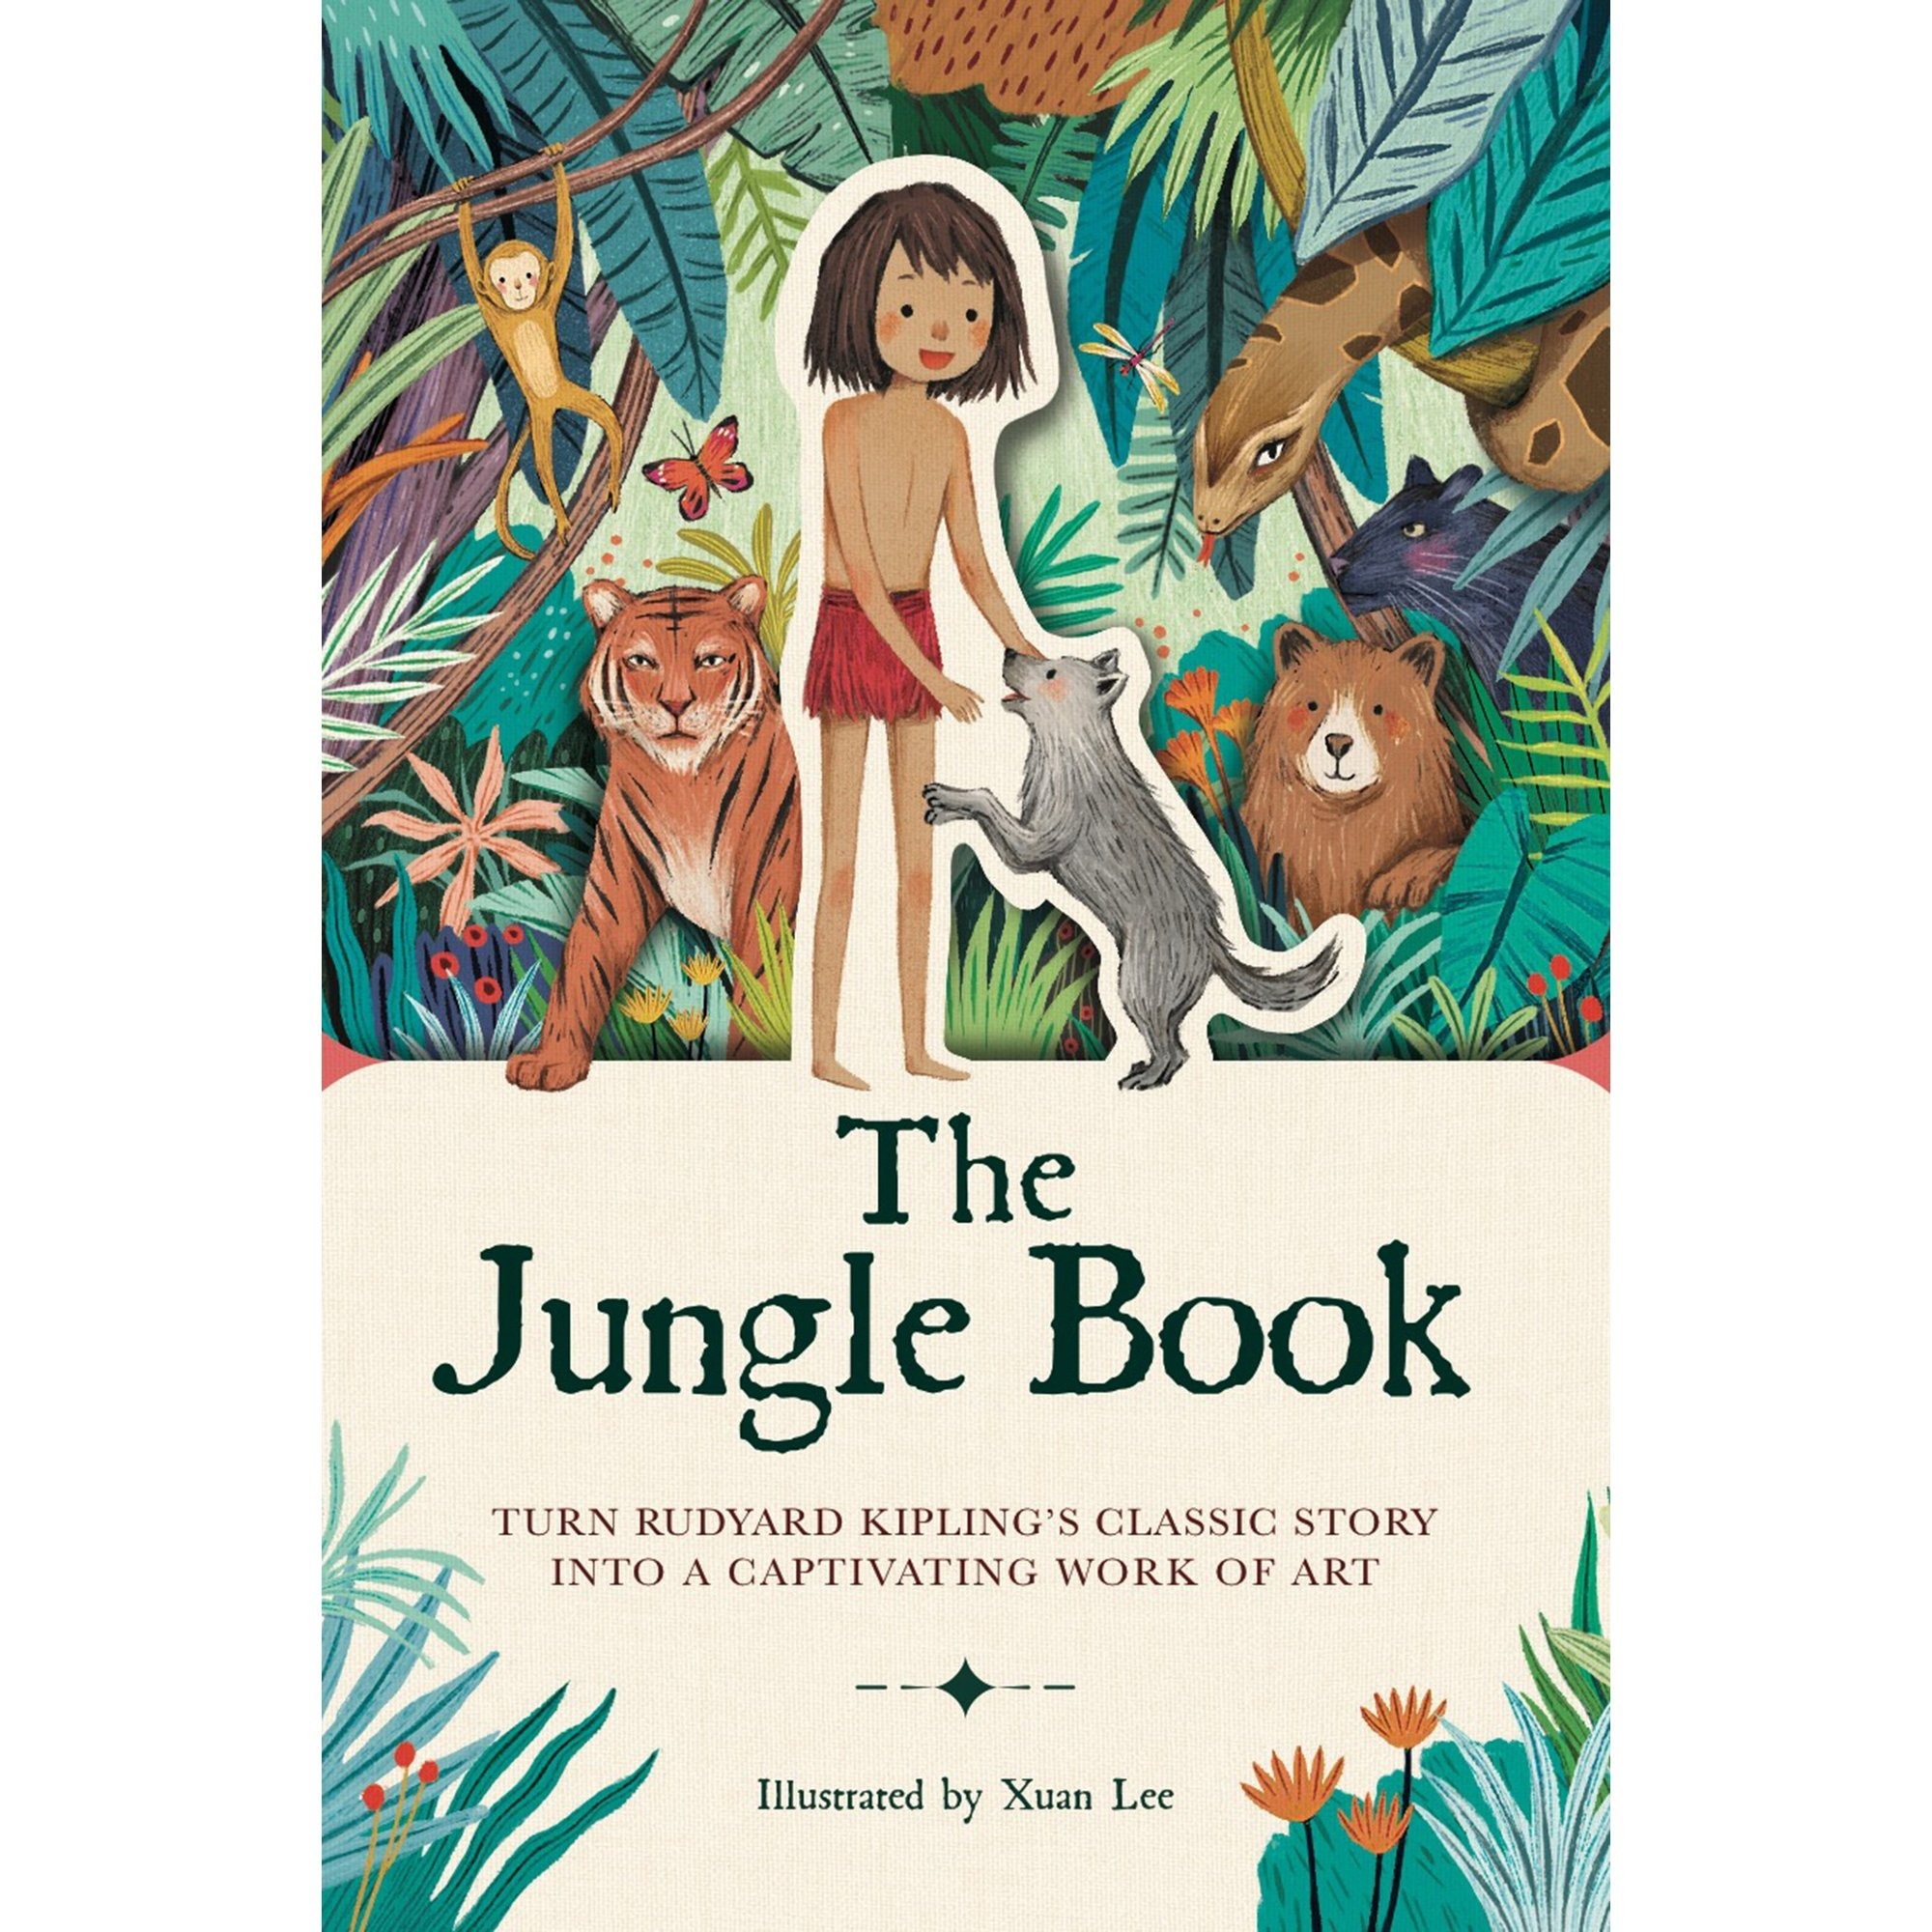 Image of Paperscapes The Jungle Book